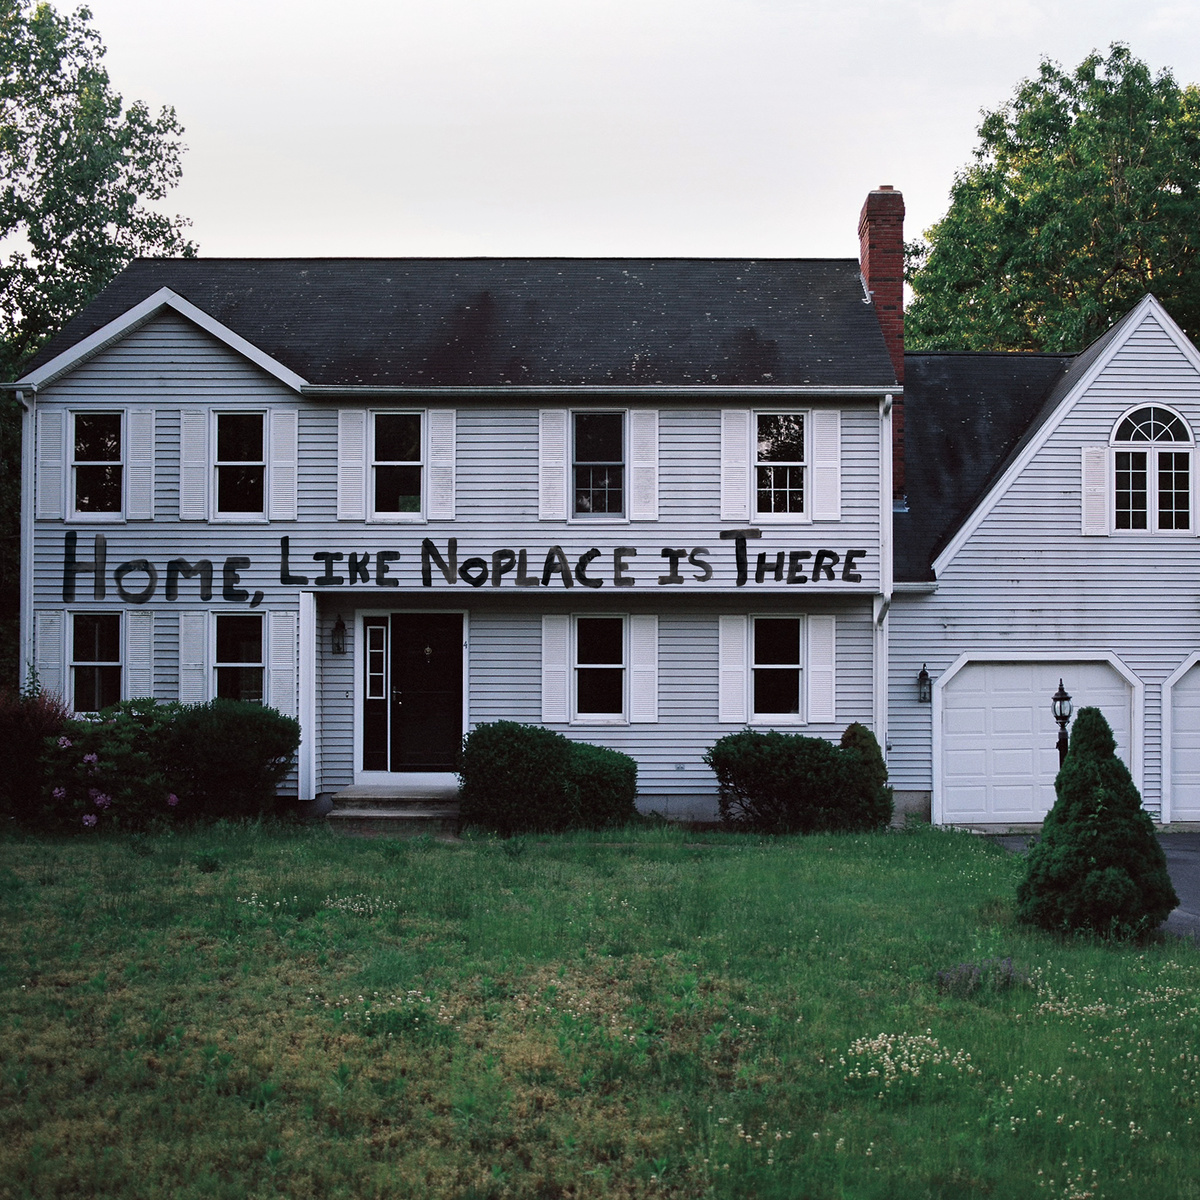 The Hotelier - Home, Like Noplace Is There